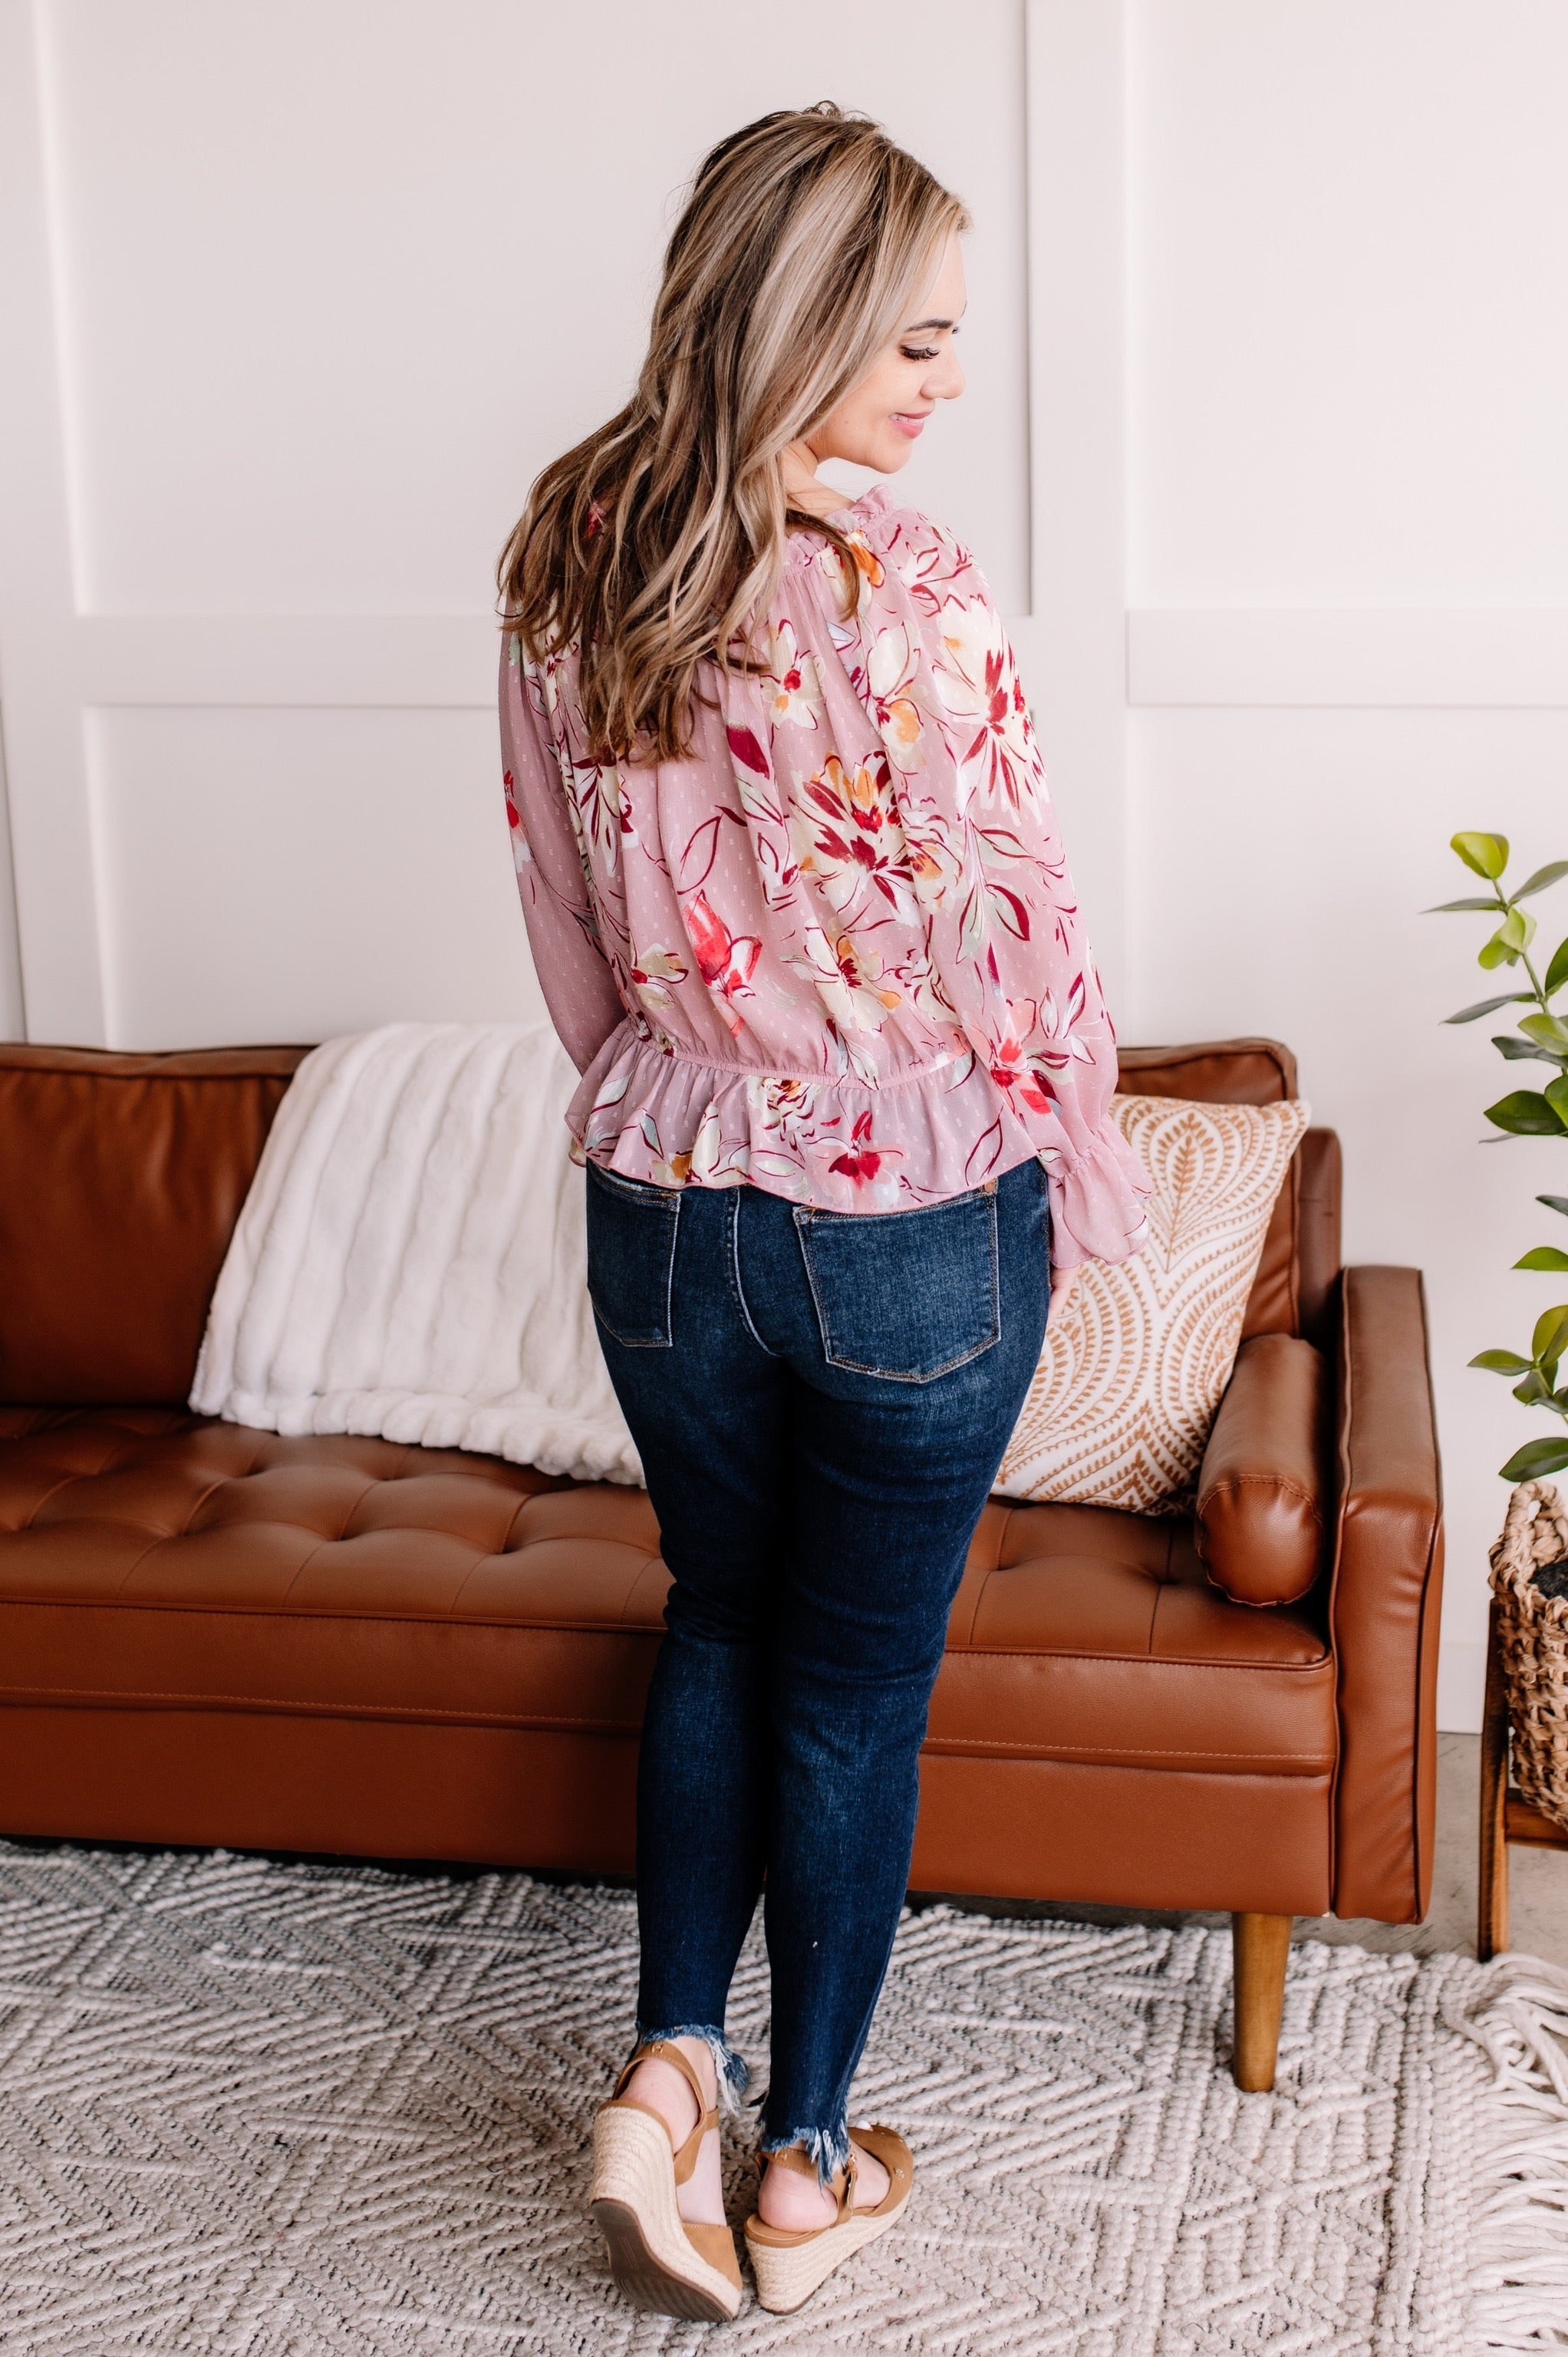 Above and Beyond Theradenim Skinny Jeans-Clothing-Rise Apparel-[option4]-[option5]-[option6]-[option7]-[option8]-Shop-Boutique-Clothing-for-Women-Online